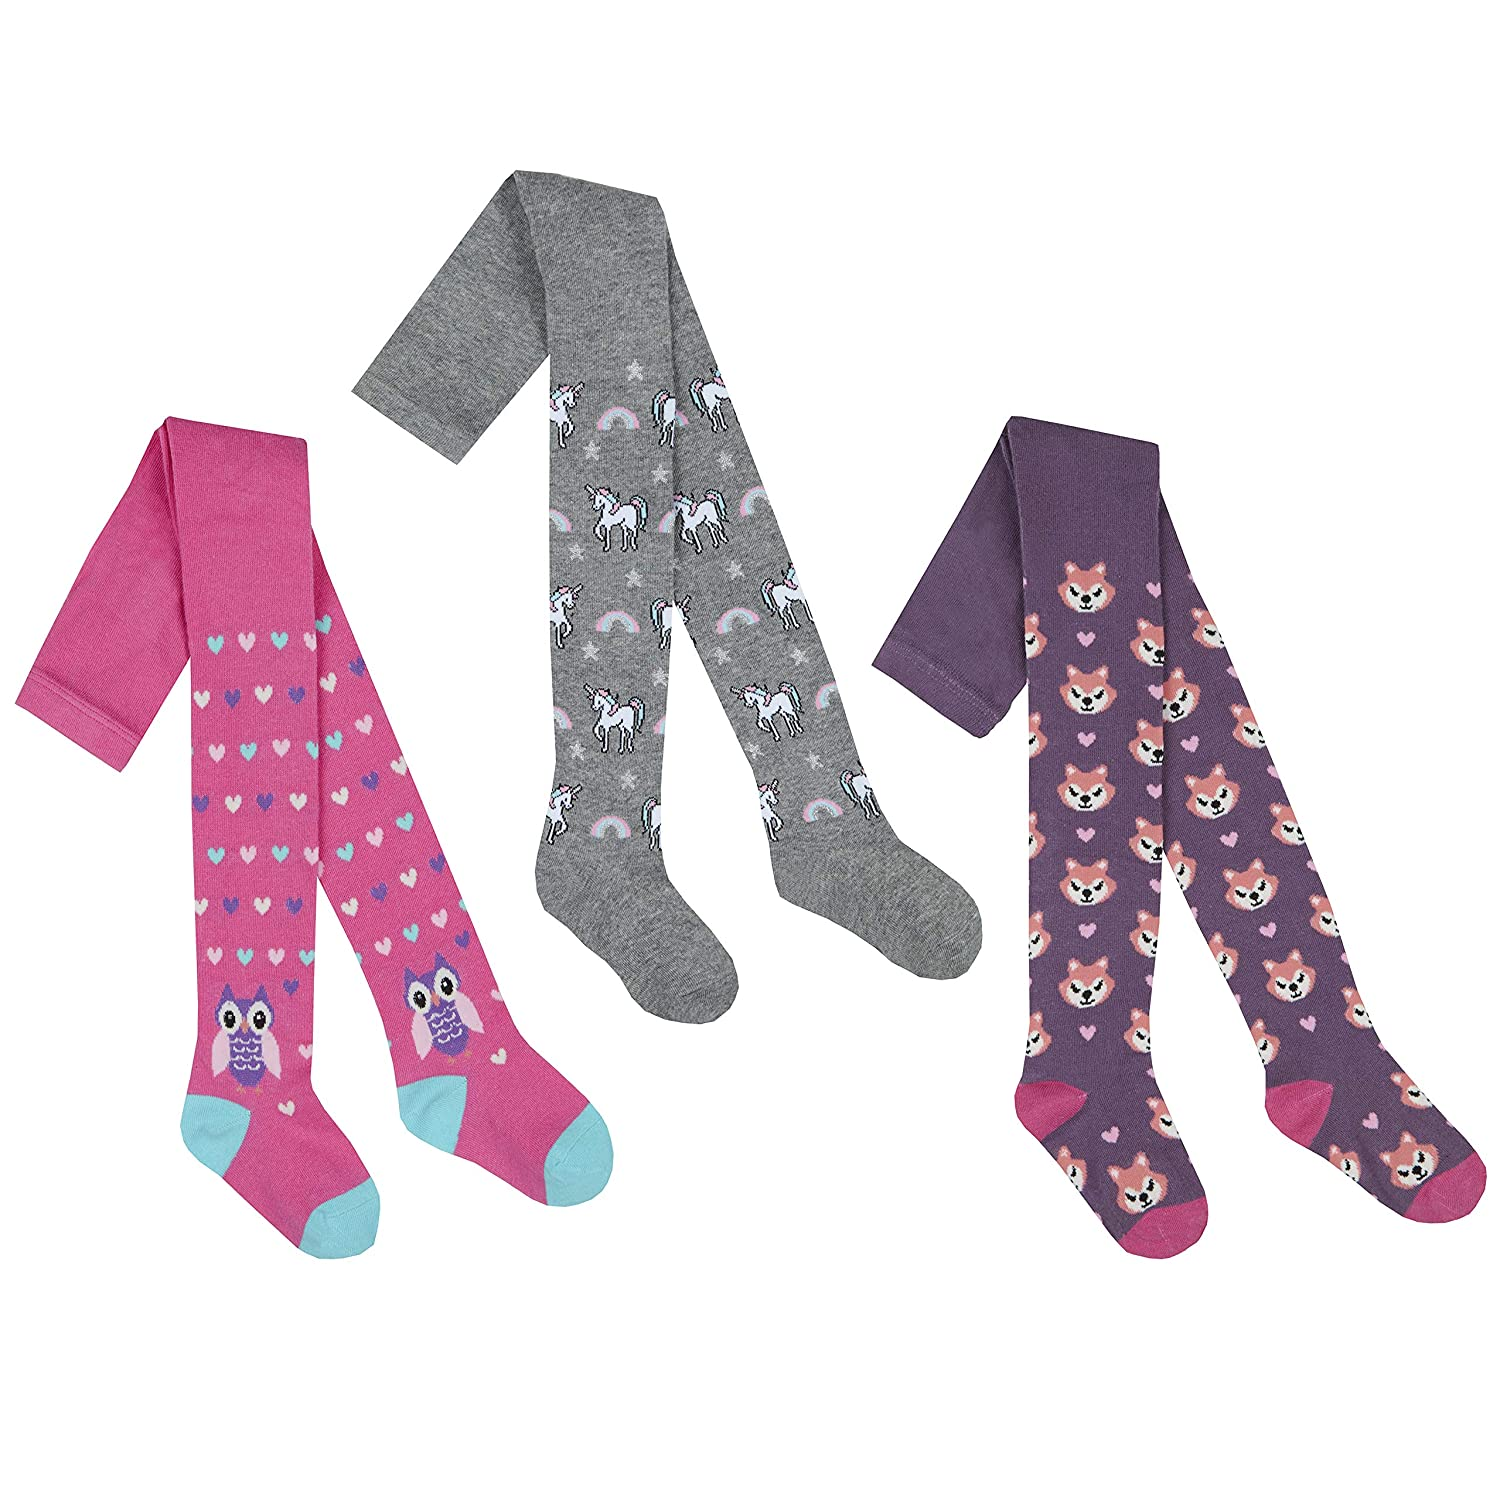 Girls 3 Pack of Novelty Print Tights